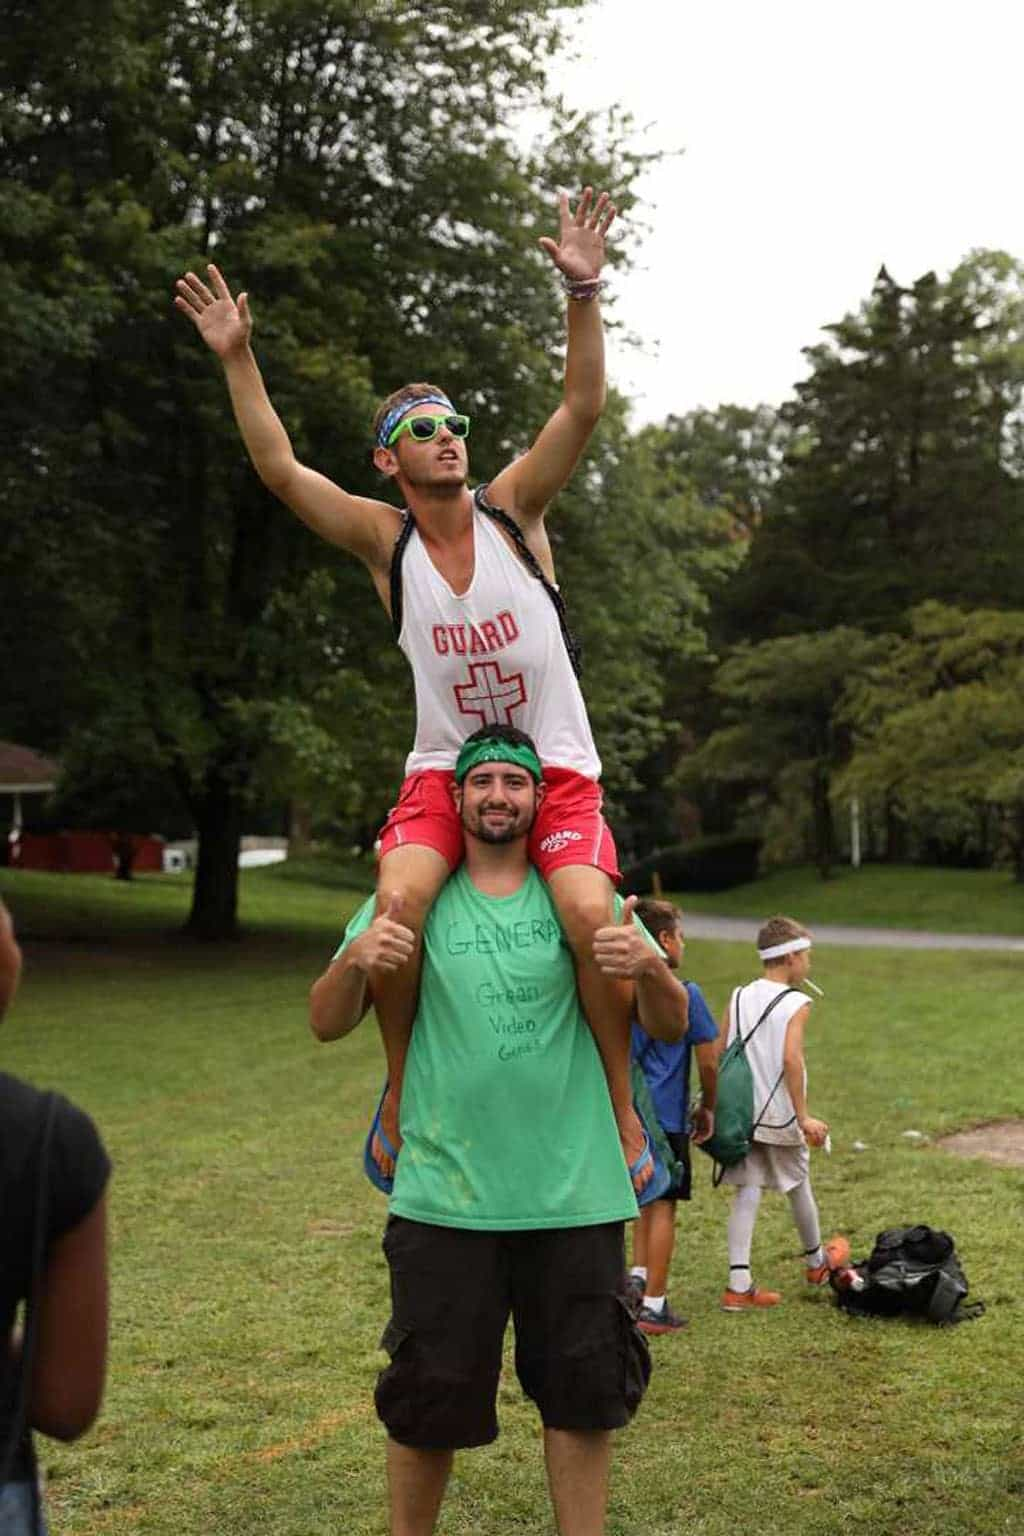 West Hills Day Camp Counselors Sitting on Each other's Shoulders Cheering